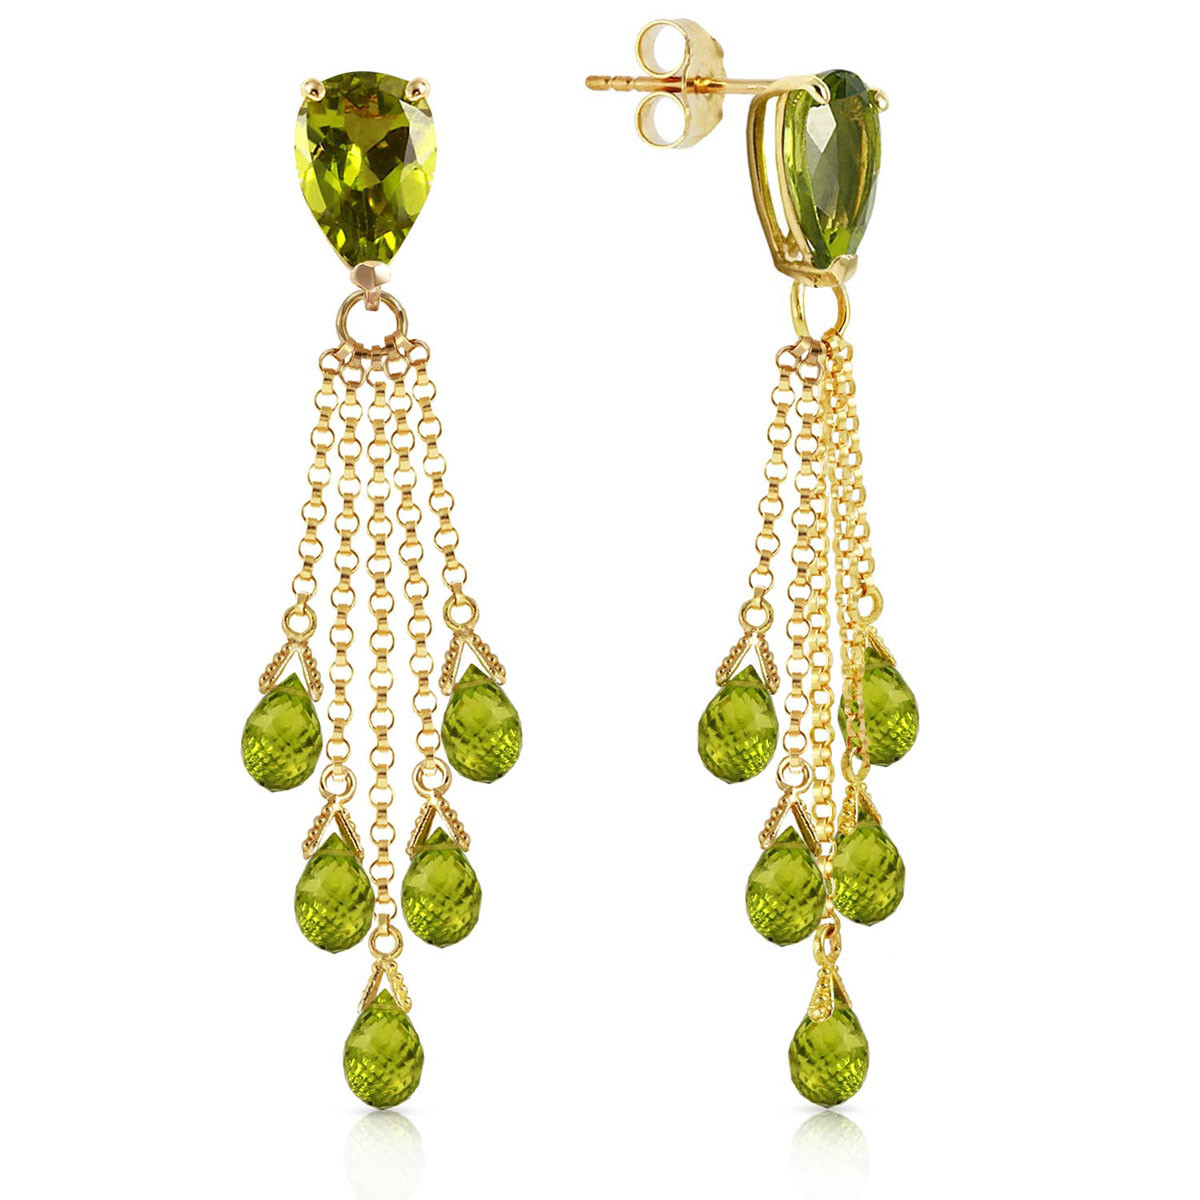 Peridot Comet Tail Drop Earrings 15.5 ctw in 9ct Gold